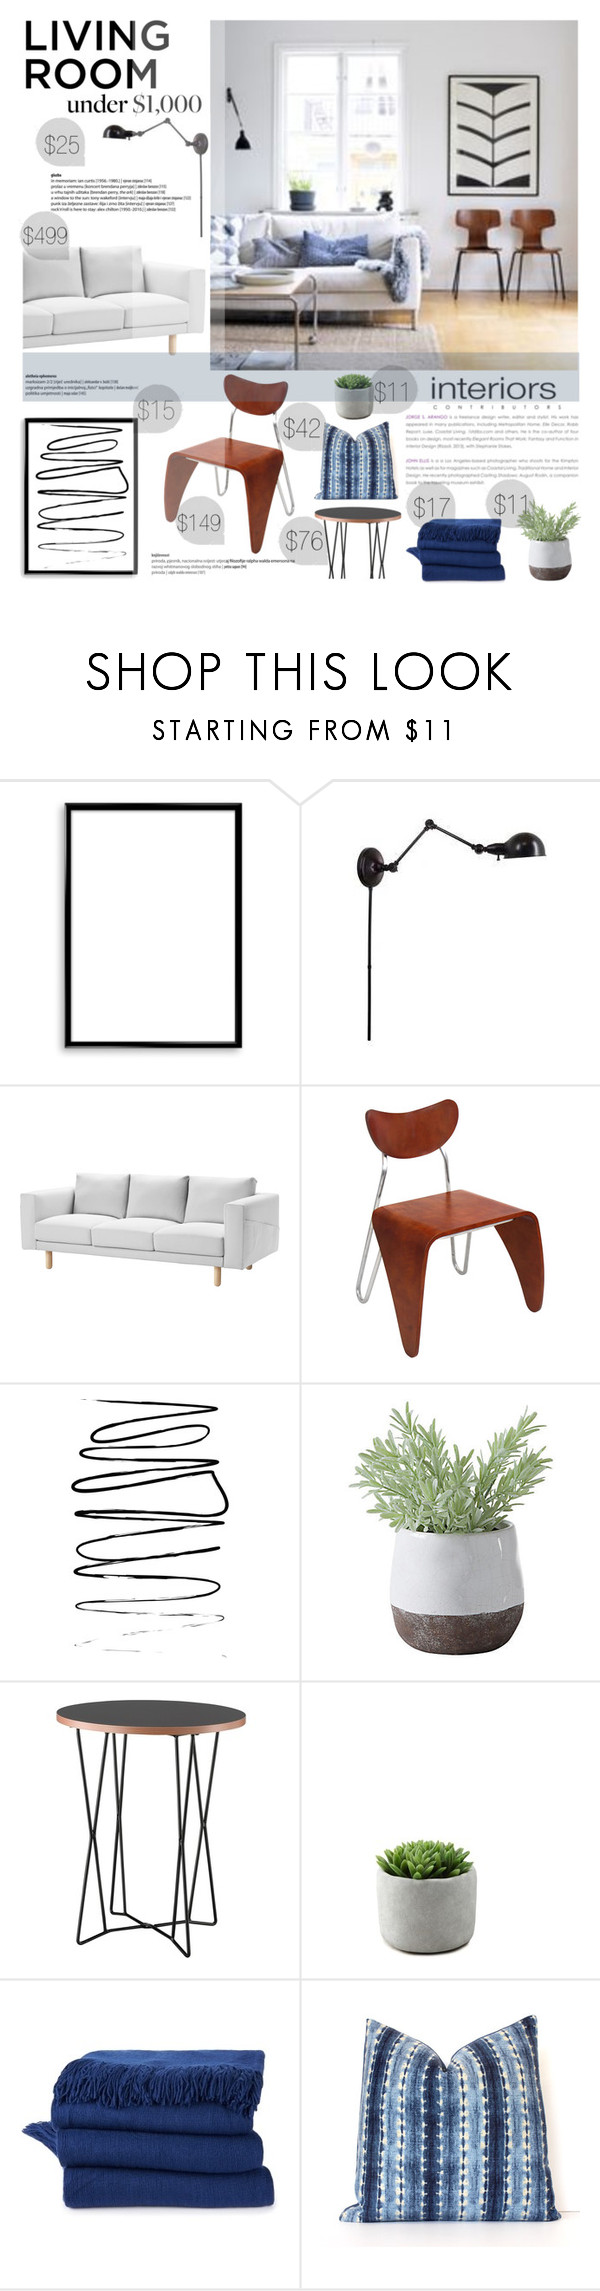 """Feels like Home"" by fyenksfiona ❤ liked on Polyvore featuring interior, interiors, interior design, home, home decor, interior decorating, Bomedo, Dot & Bo, Torre & Tagus and modern"